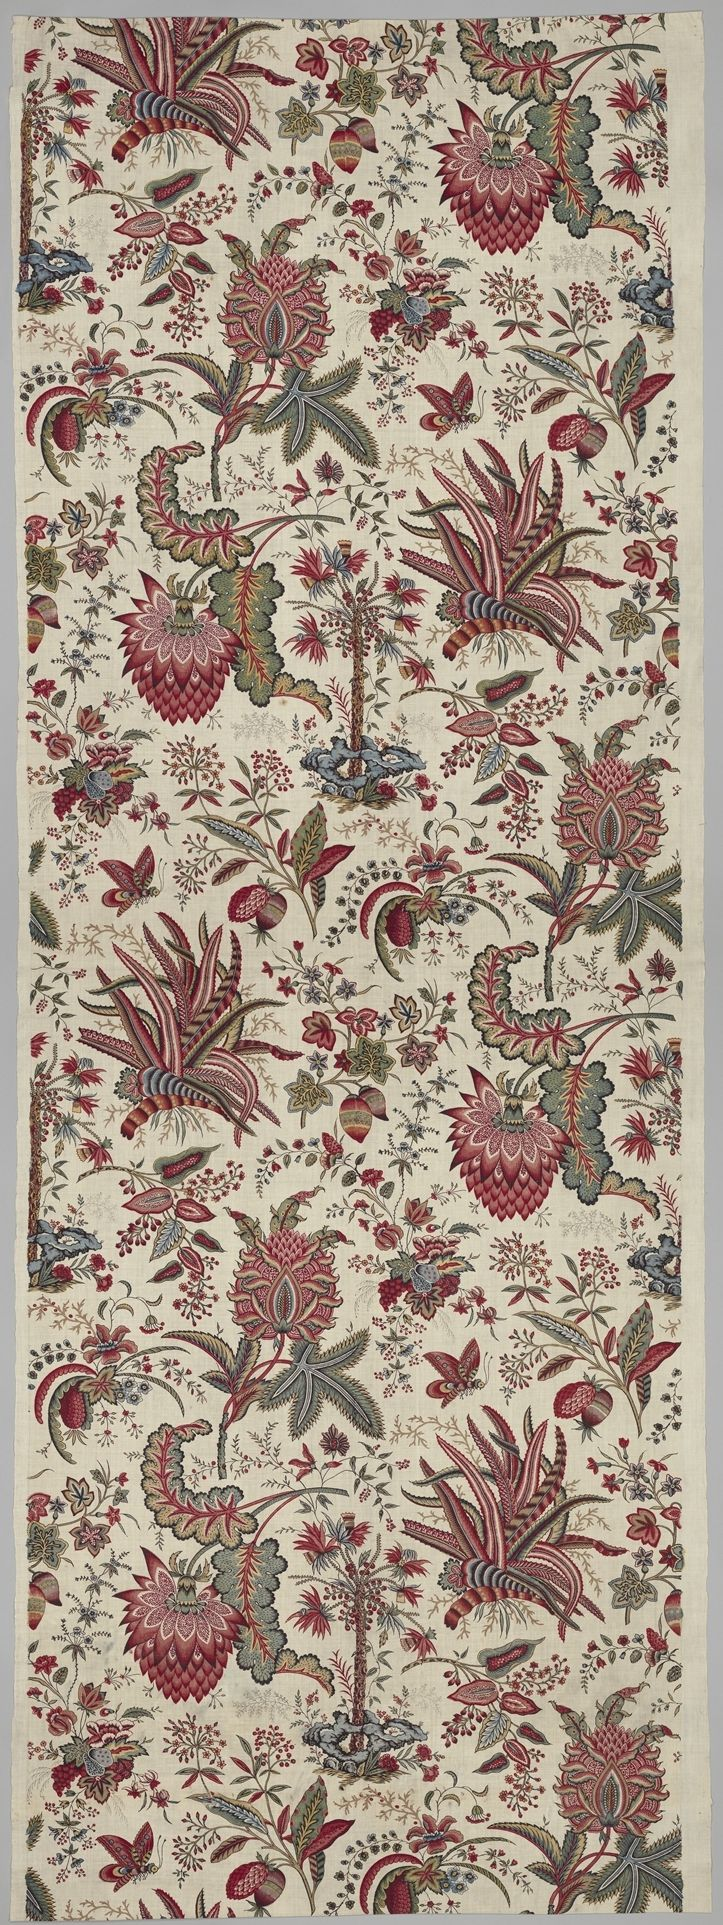 Fleurs Tropicales et Palmiers (Tropical Flowers and Palm Trees) Manufactory: Oberkampf Manufactory  (French, active 1760–1843) Date: 1787 Culture: French, Jouy-en-Josas Medium: Cotton, block printed Dimensions: Overall: 108 x 35 1/2 in. (274.3 x 90.2 cm) Classification: Textiles-Printed Credit Line: Rogers Fund, 1937 Accession Number: 37.170